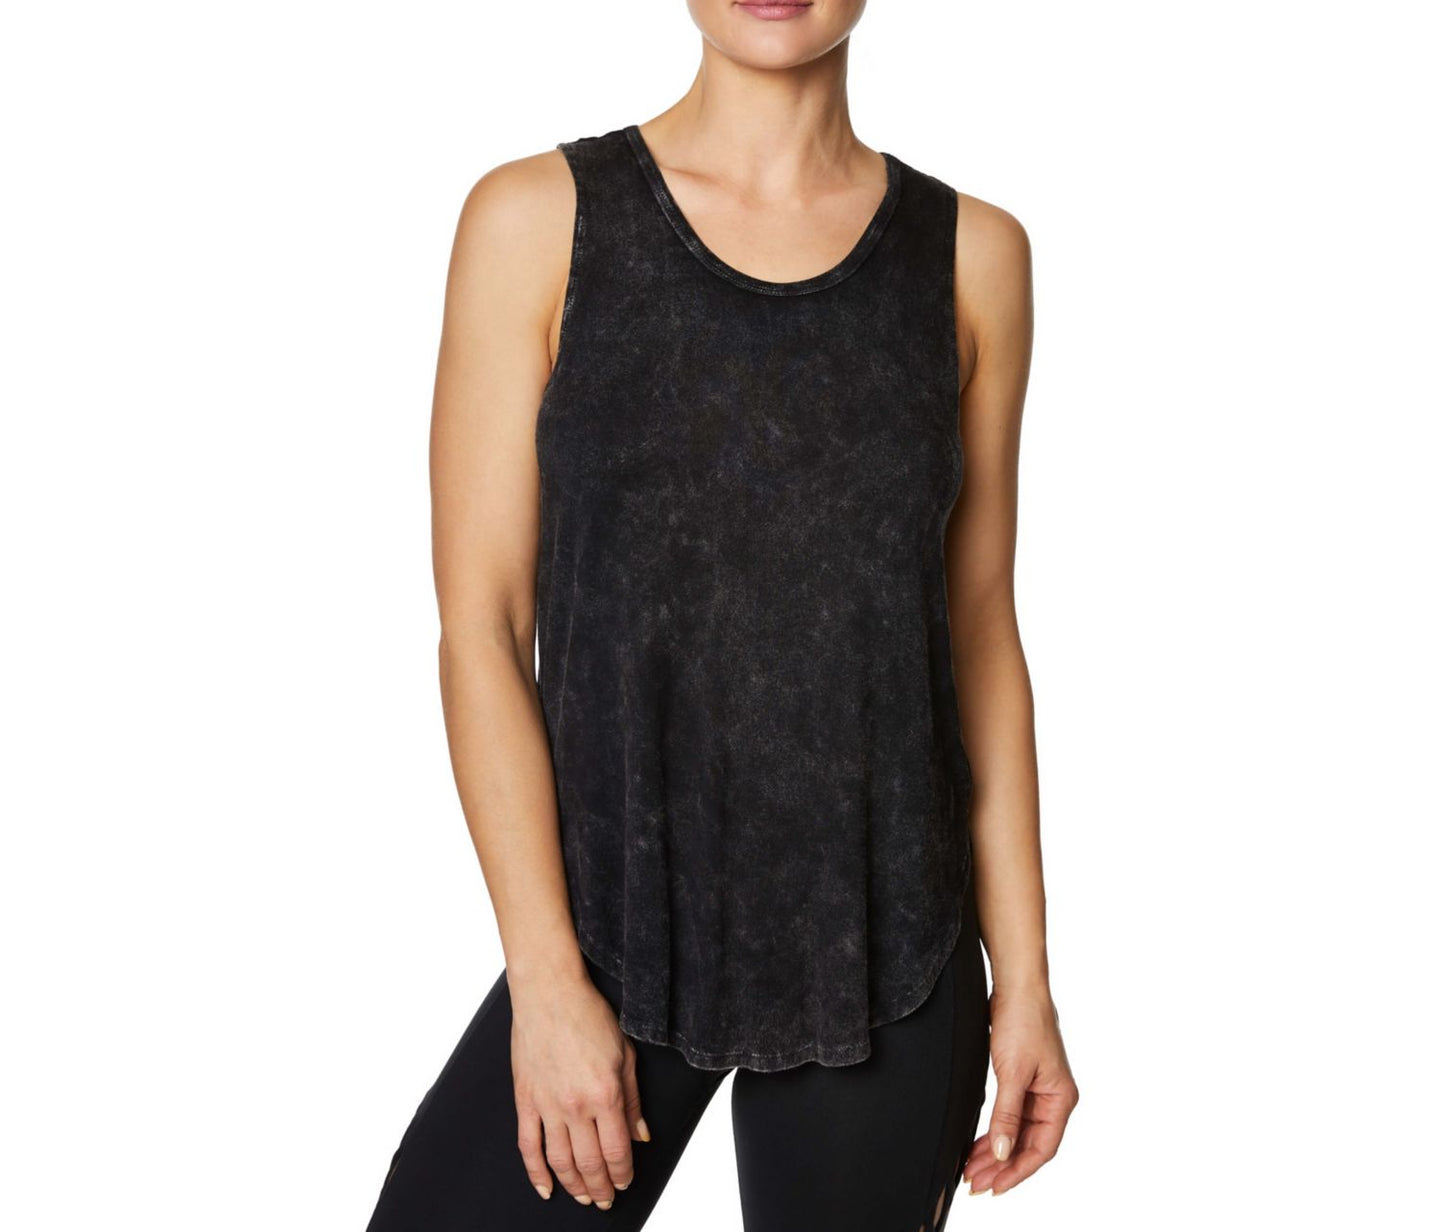 LOW BACK TANK WITH CRISS CROSS STRAPS BLACK - APPAREL - Betsey Johnson